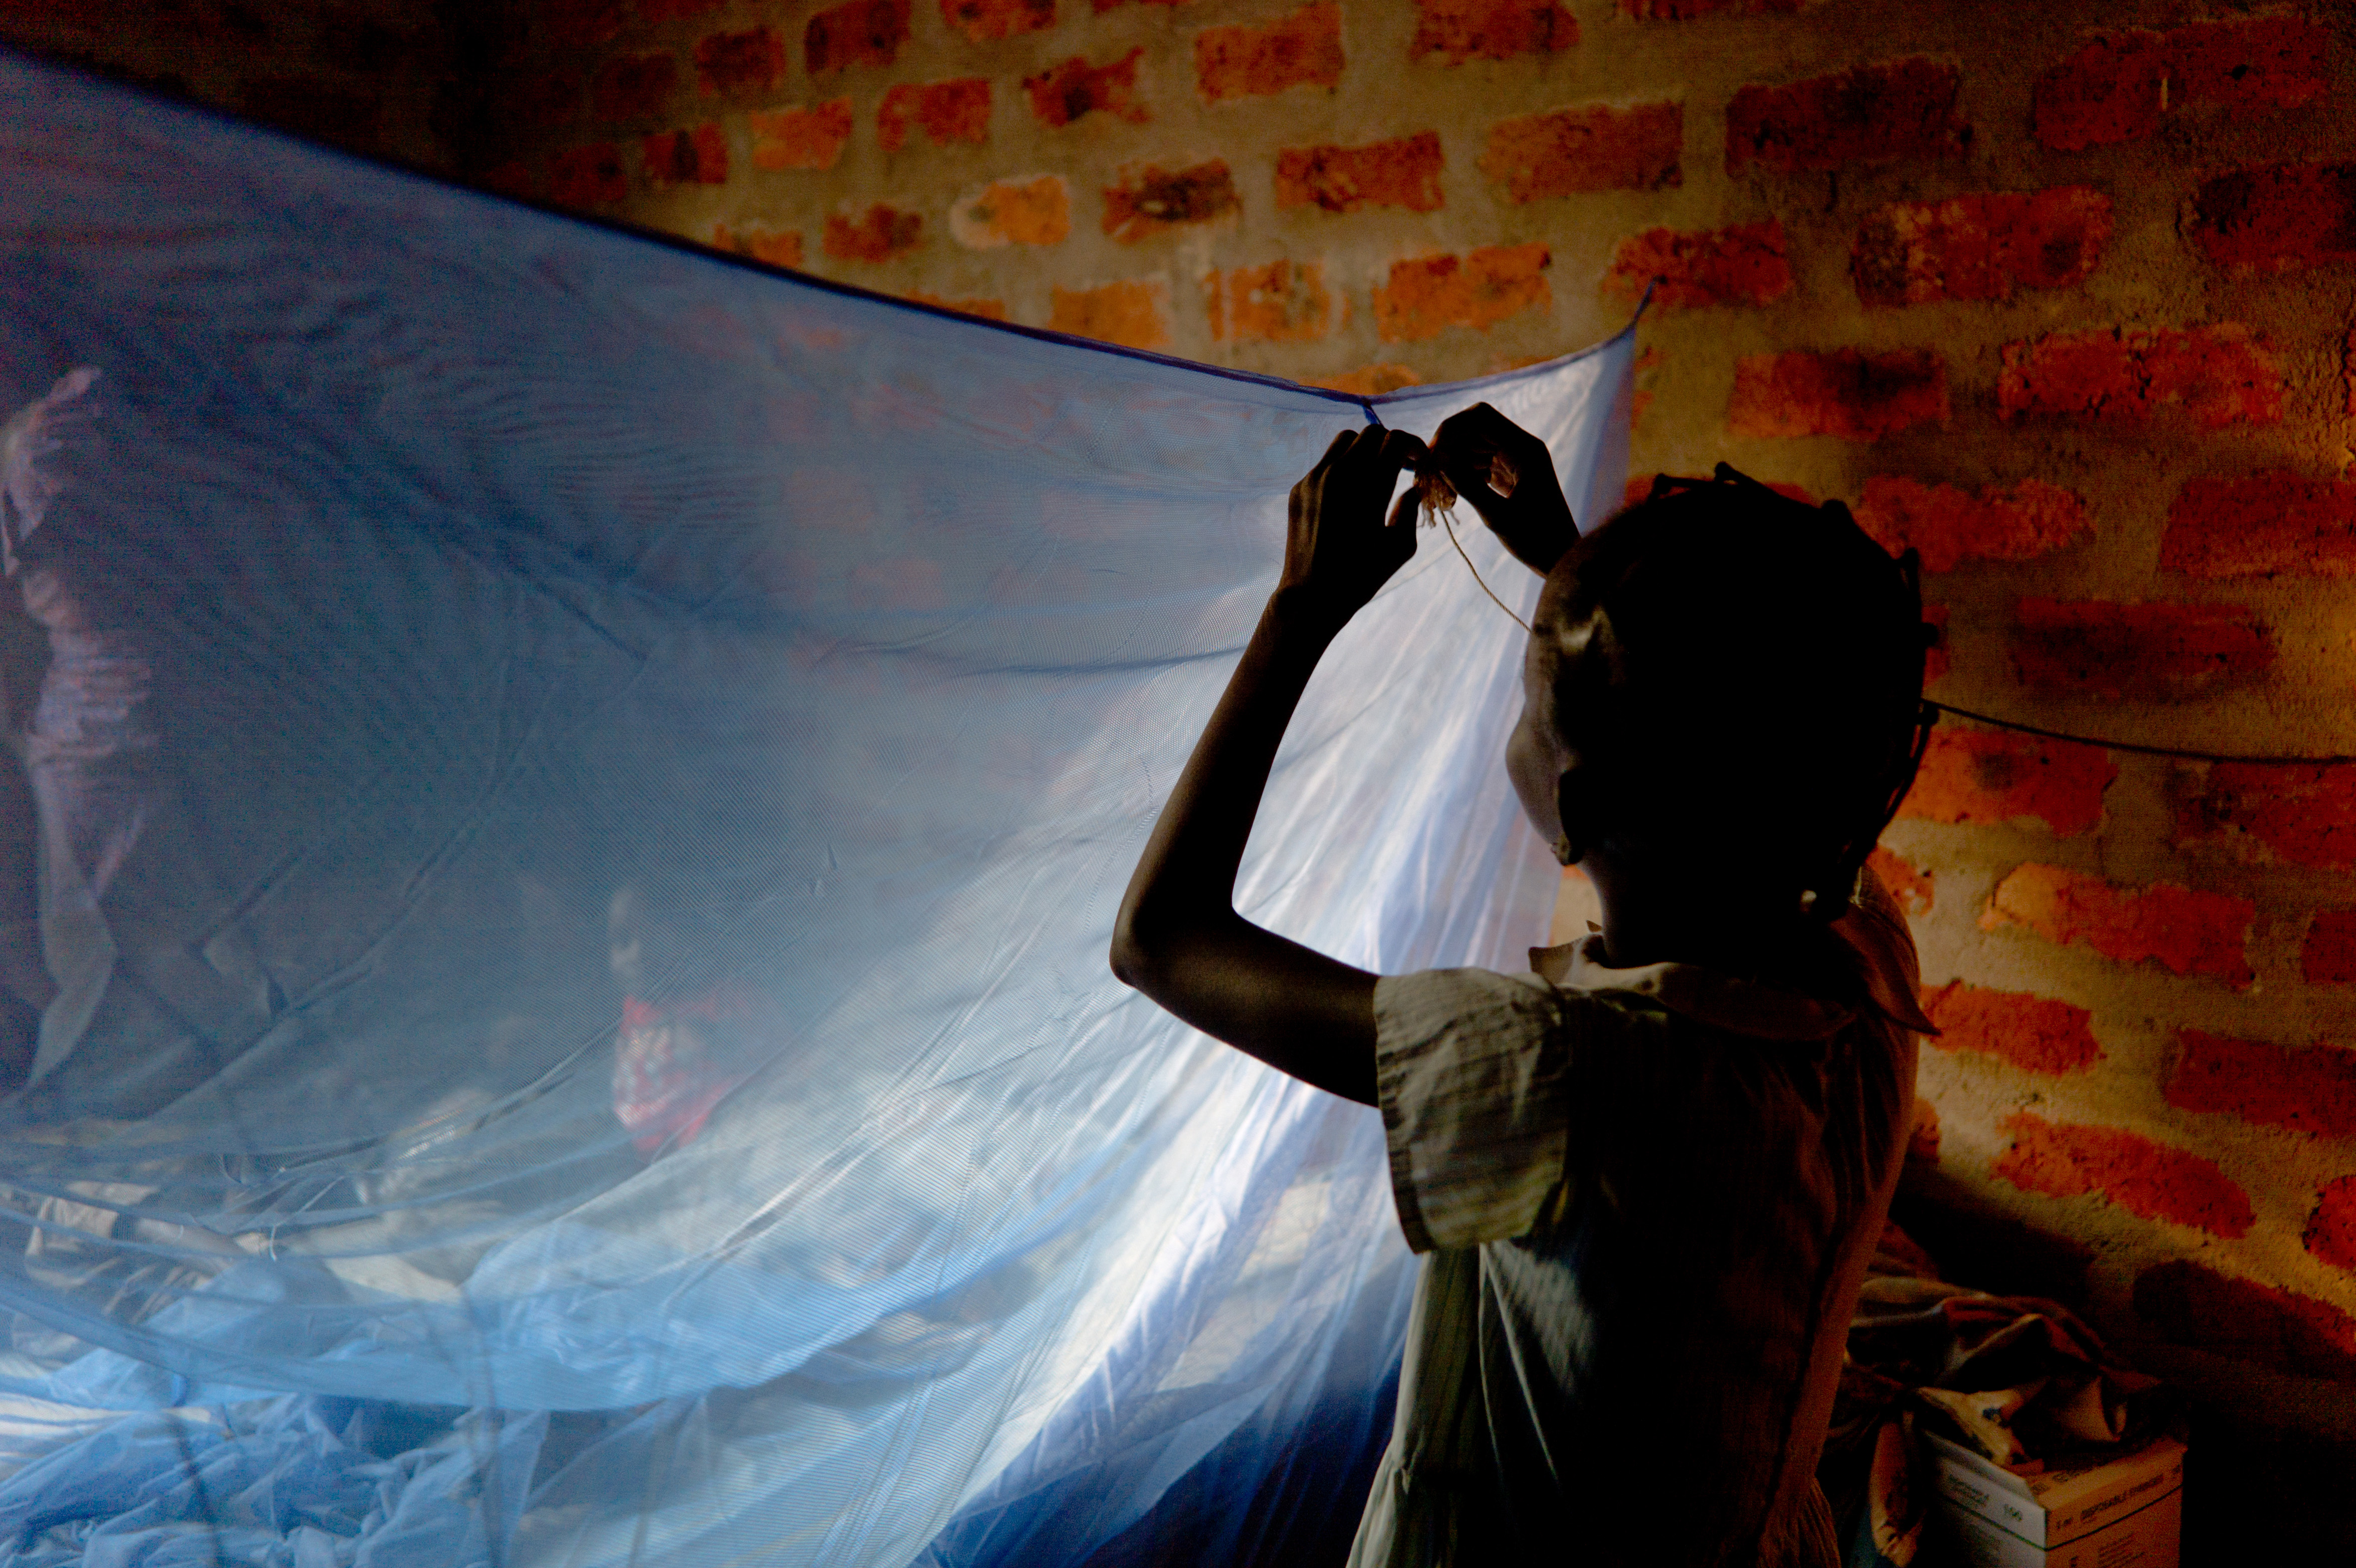 A girl places a mosquito net over her bed.